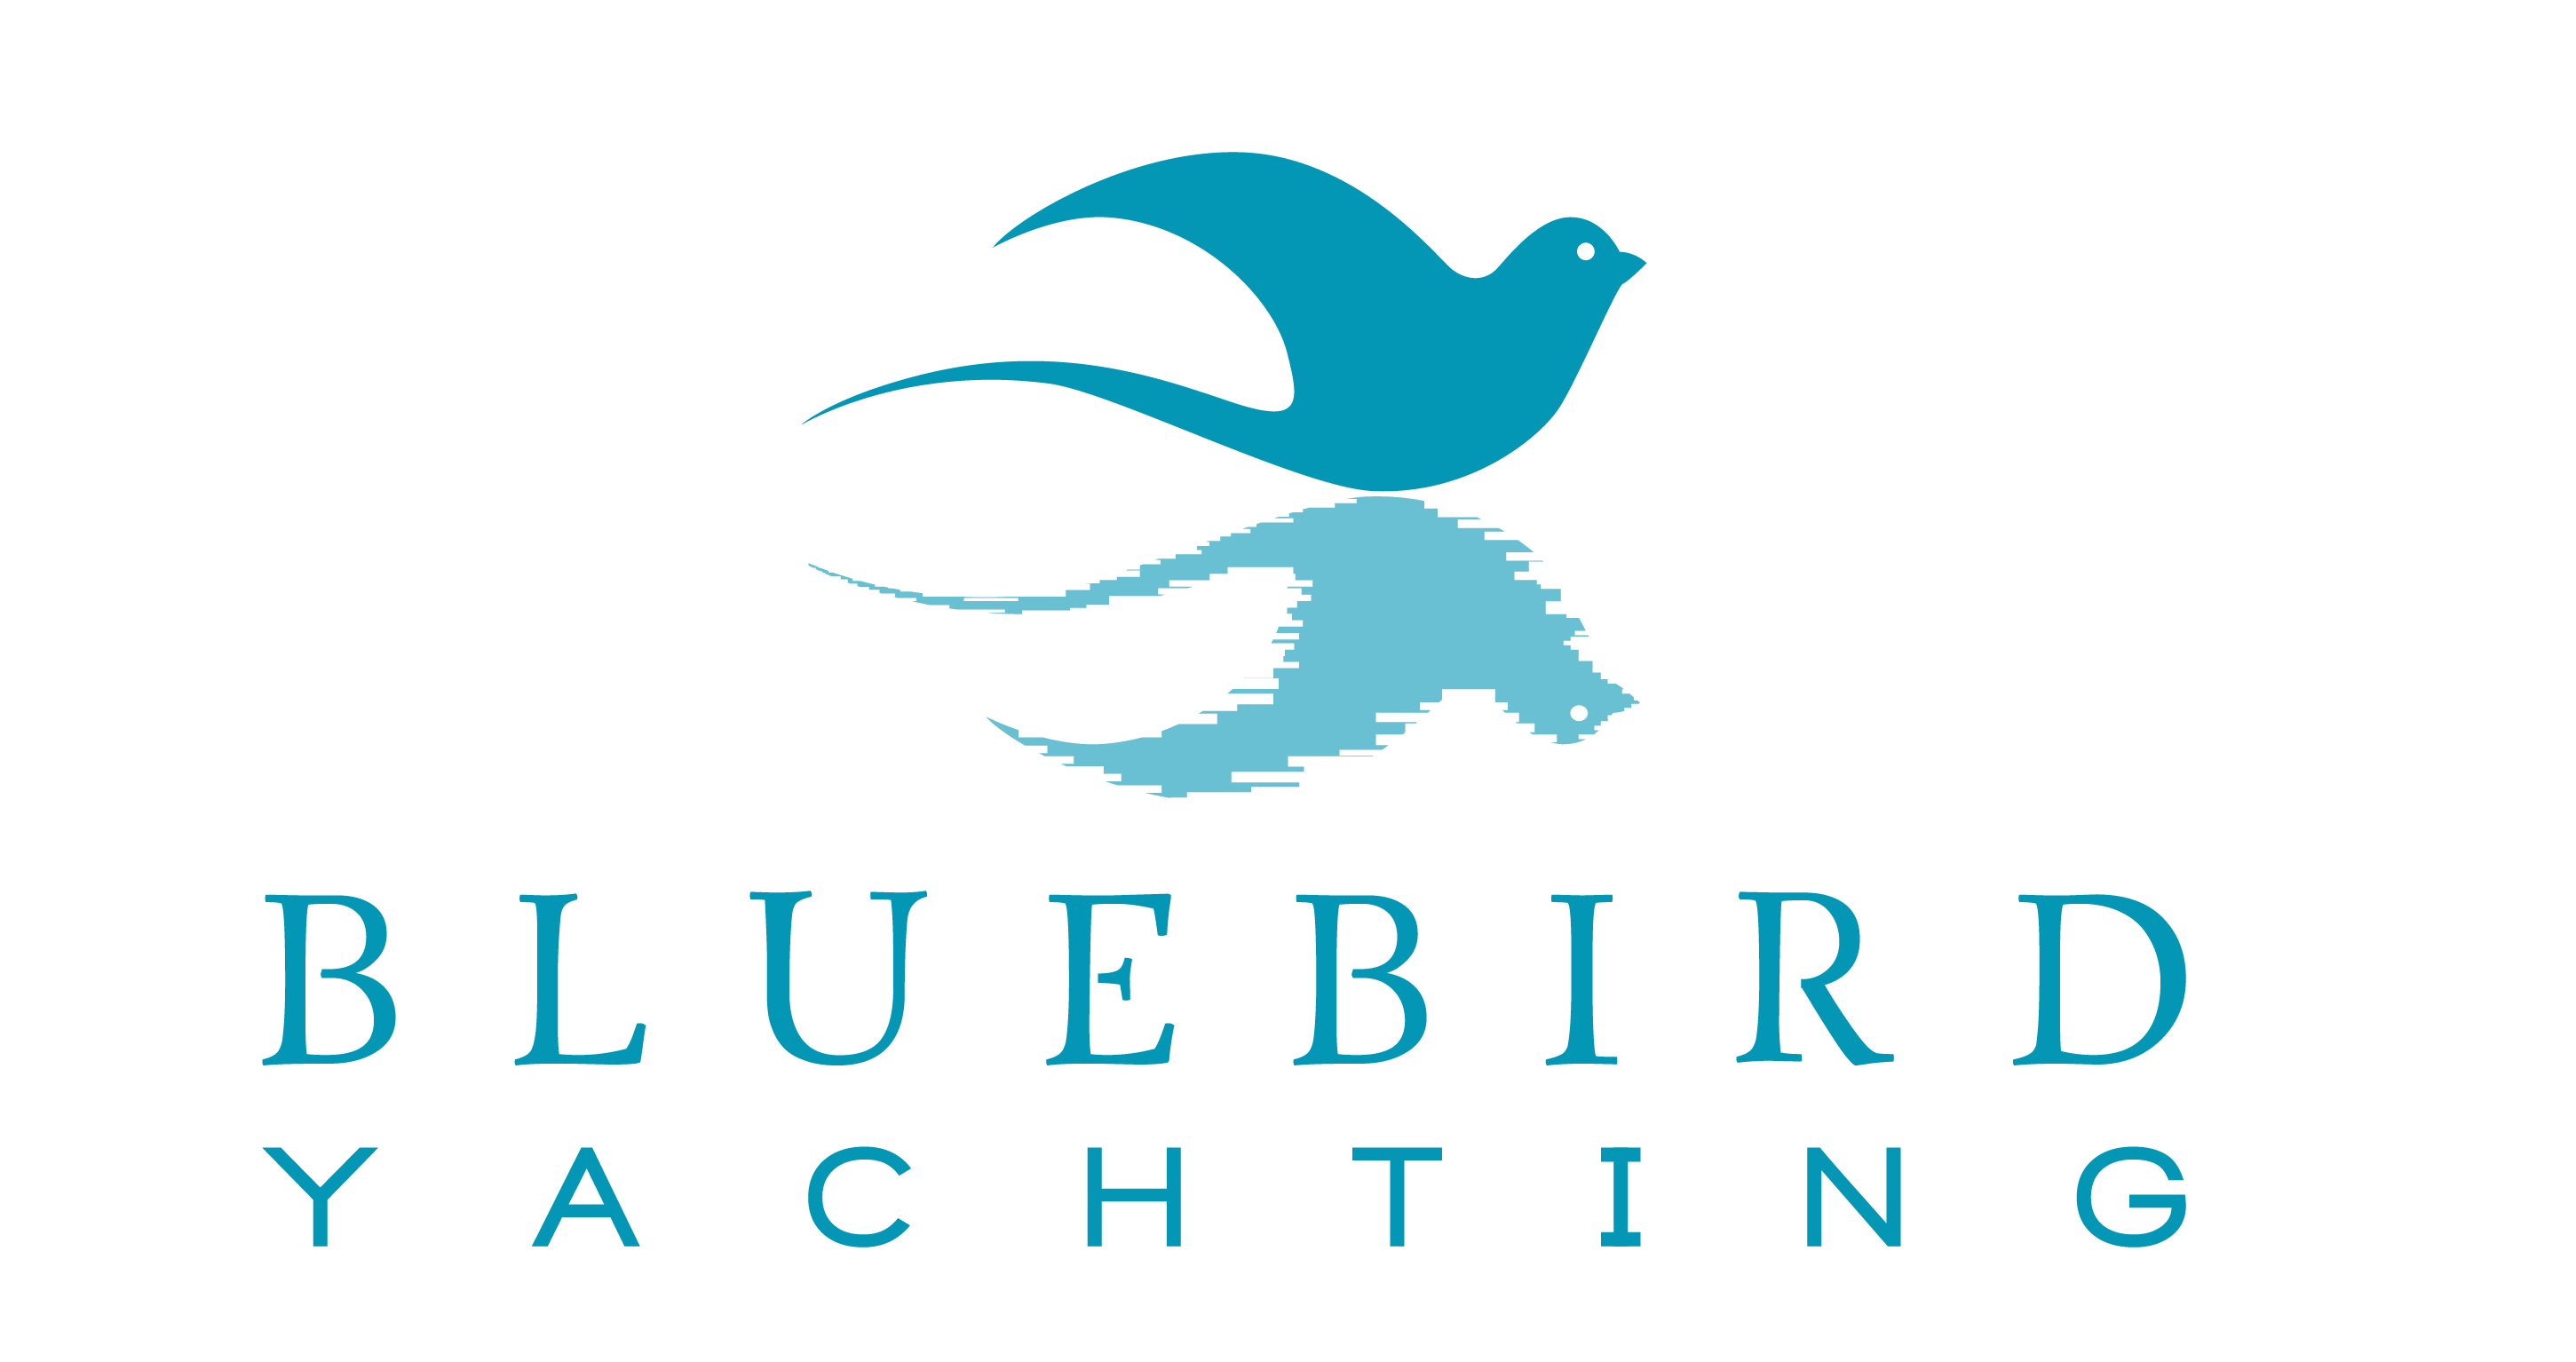 Bluebird Yachting | Sicilia | Bluebird Yachting